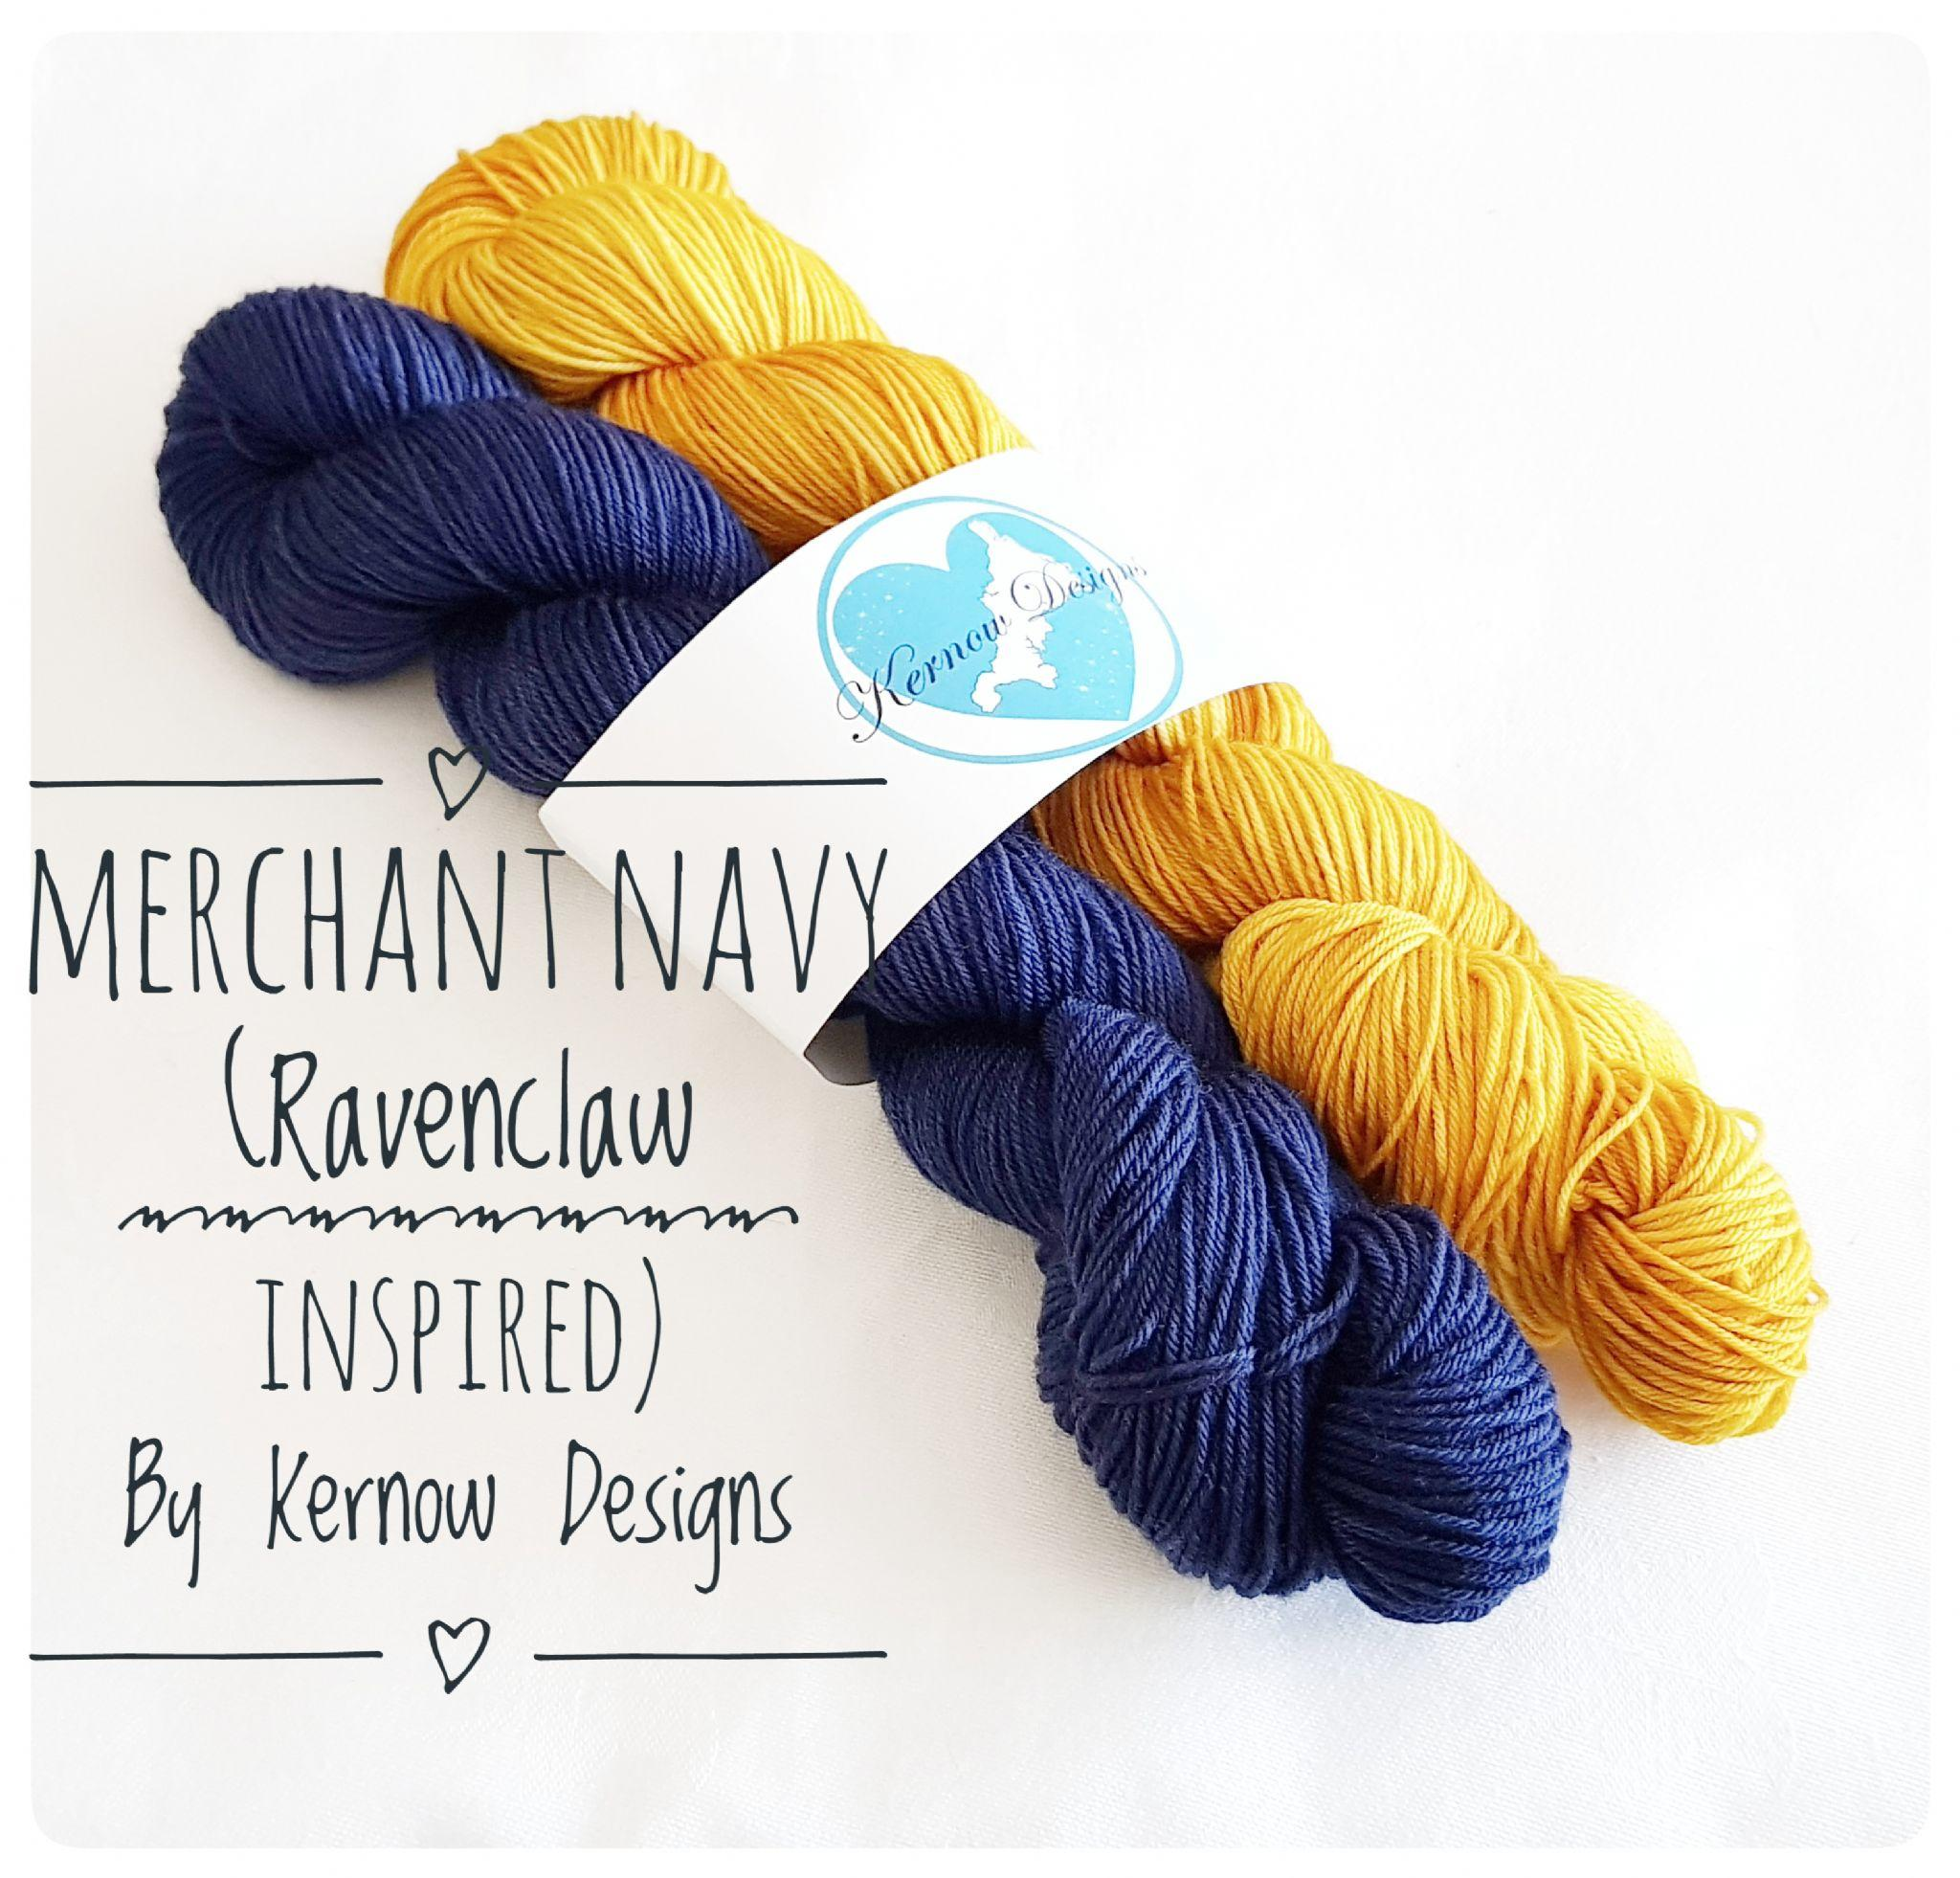 Merchant Navy 100g Set Hand Dyed Yarn